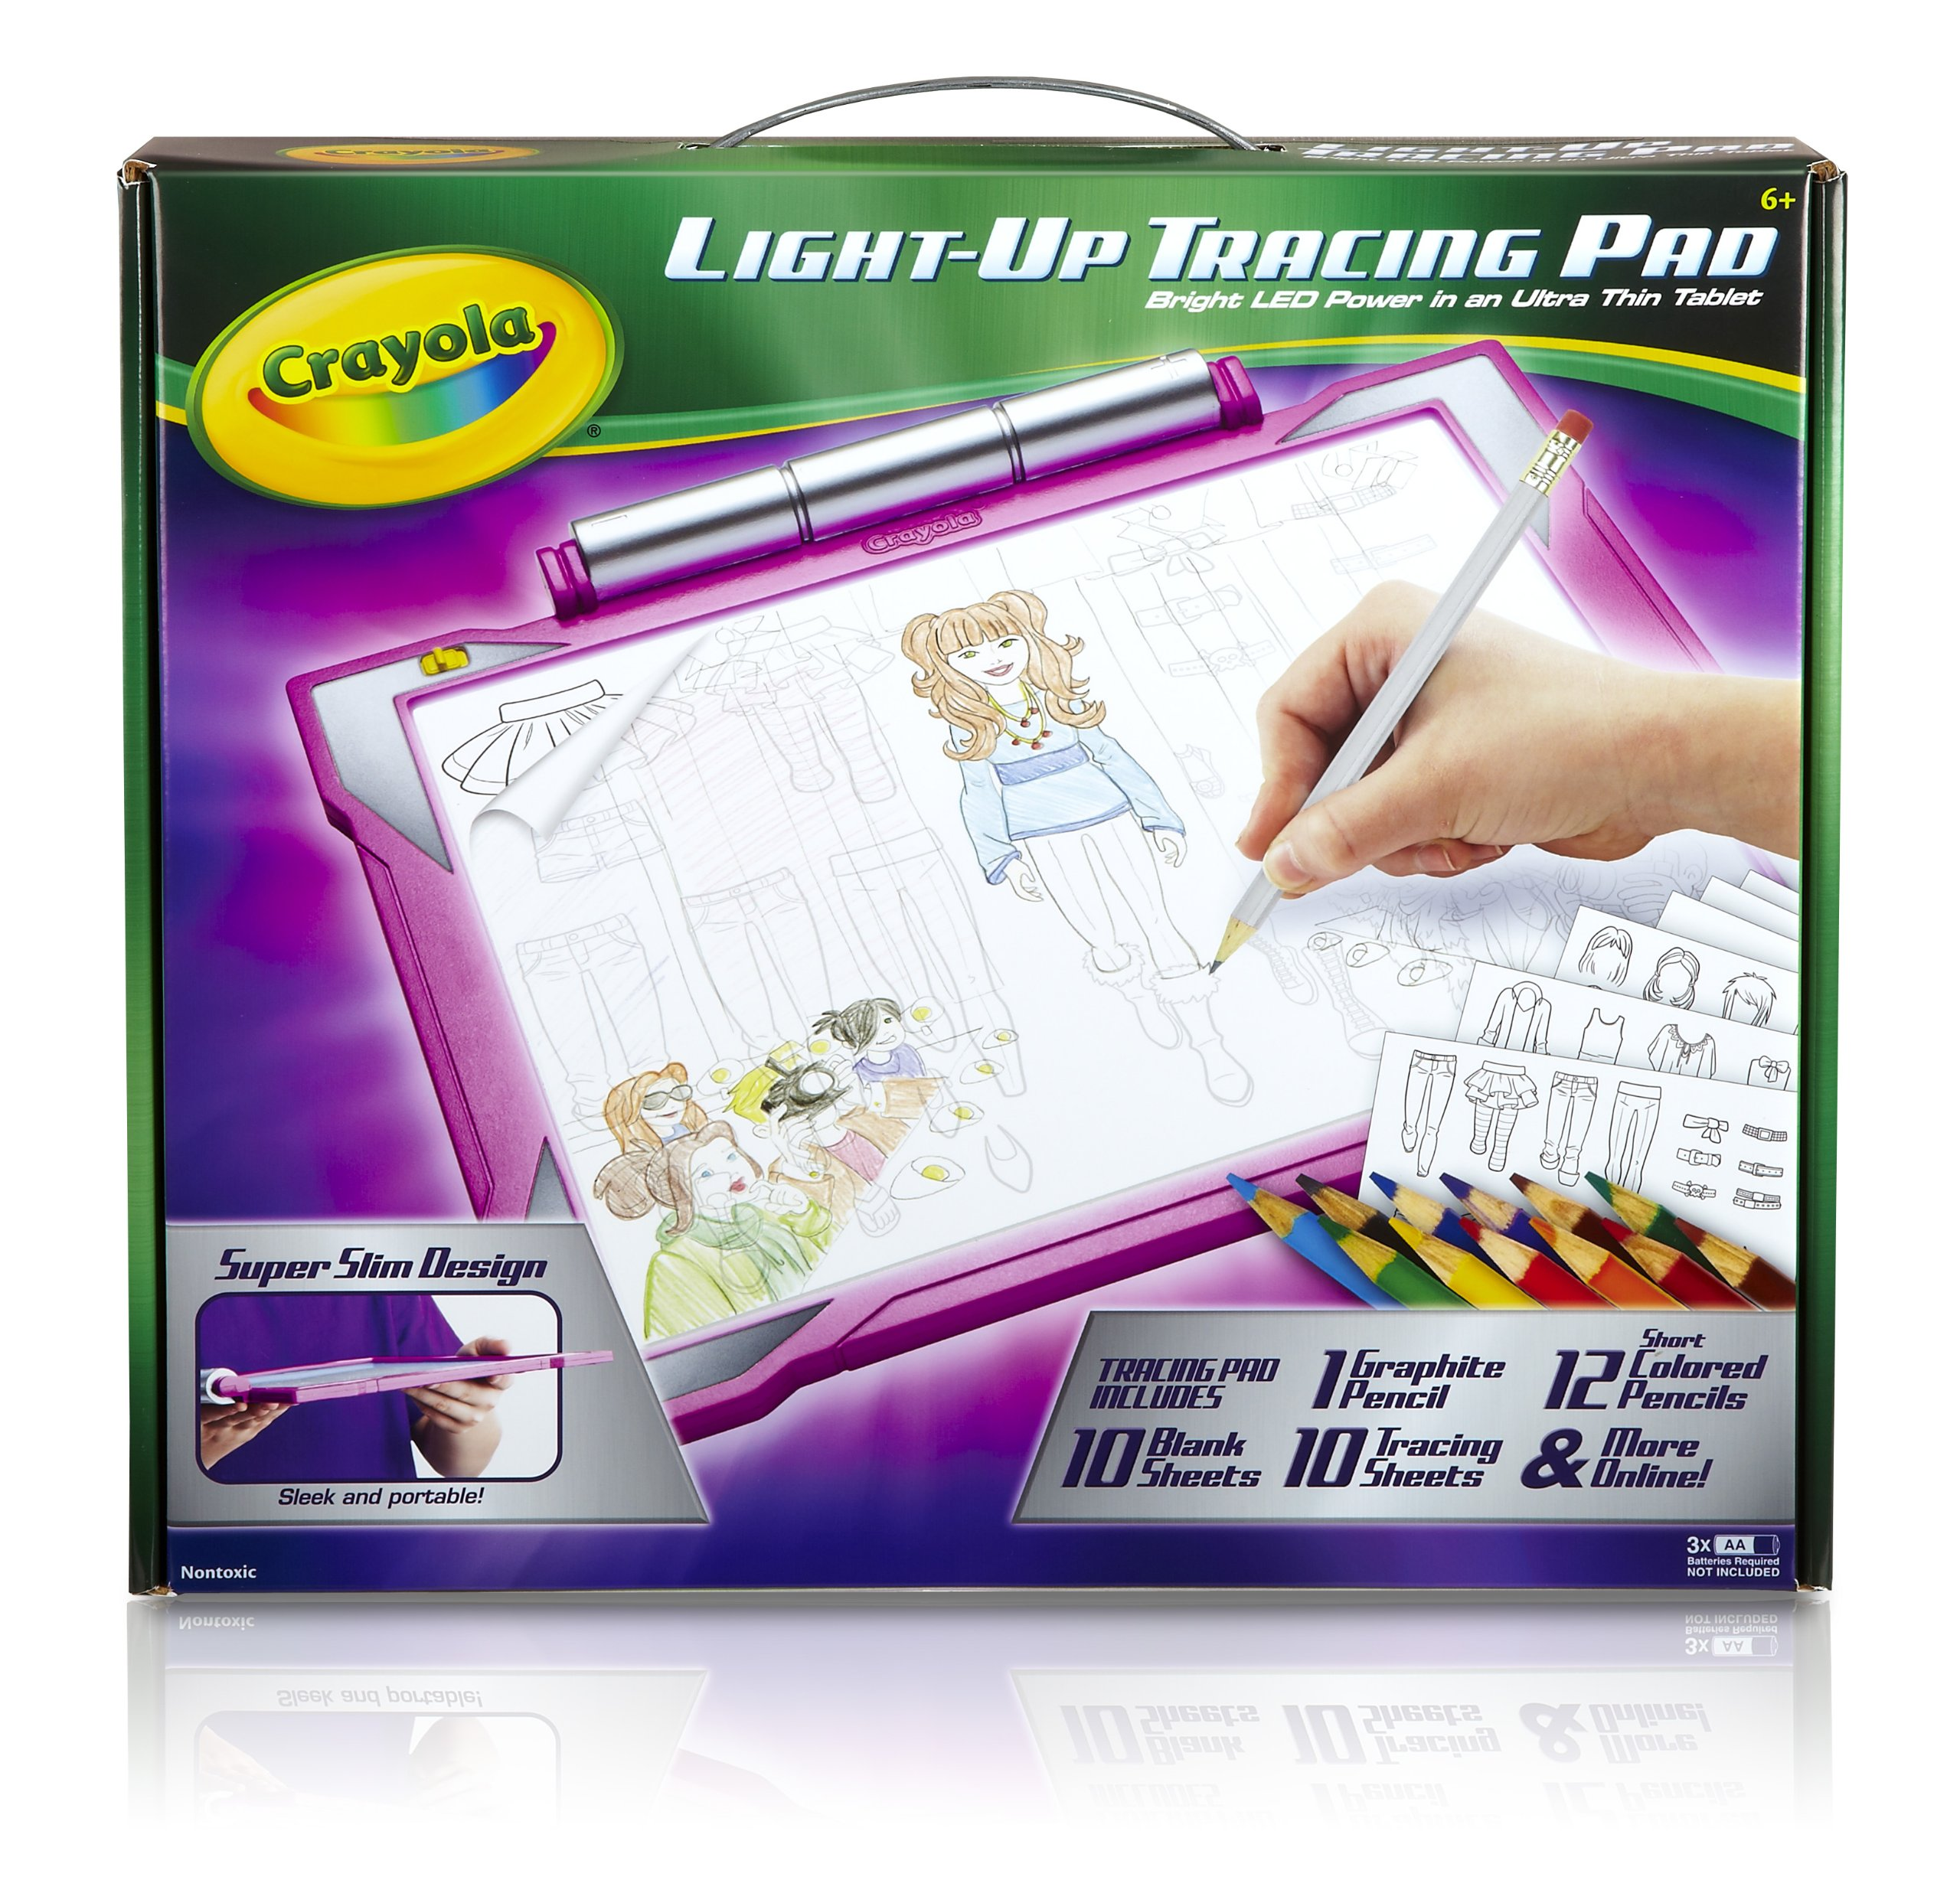 Crayola Light Up Tracing Pad   Pink, Coloring Board For Kids, Gift, Toys  For Girls, Ages 6, 7, 8, 9, 10